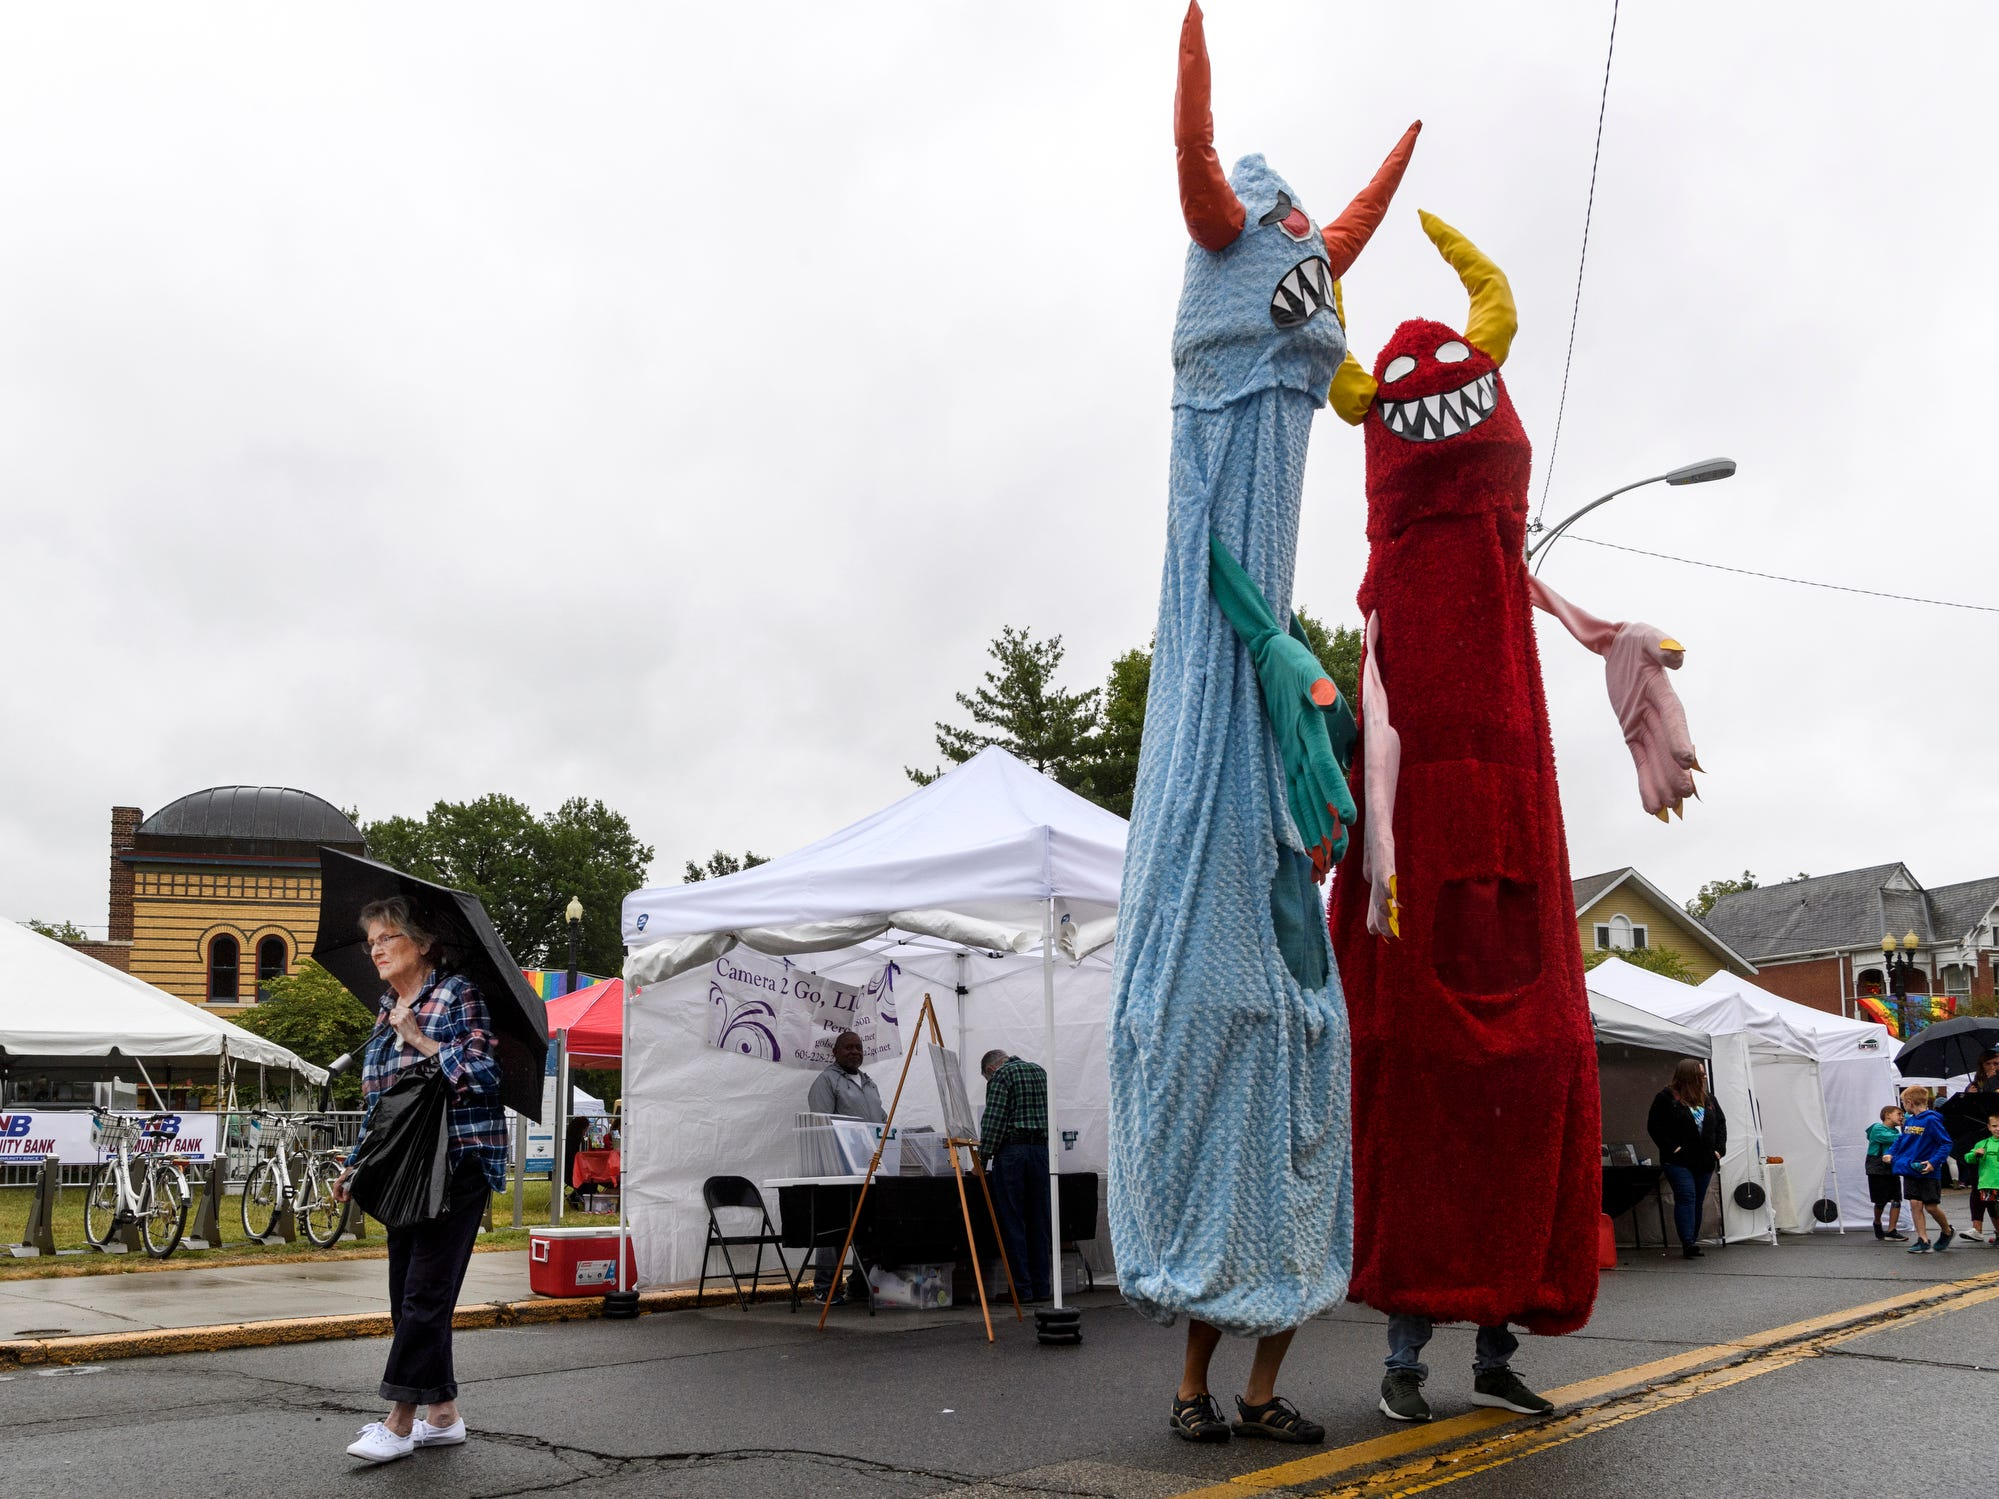 Lynne Mowrey, from left, browses booths as Warren Hayes and his son Chauncey Hayes greet people in monster costumes at the Fall Funk in the City Art Festival set up around Haynie's Corner in Evansville, Ind., Saturday, Sept. 22, 2018. A steady crowd of people braved periodic rain and cooler temperatures to purchase art and food from local vendors.